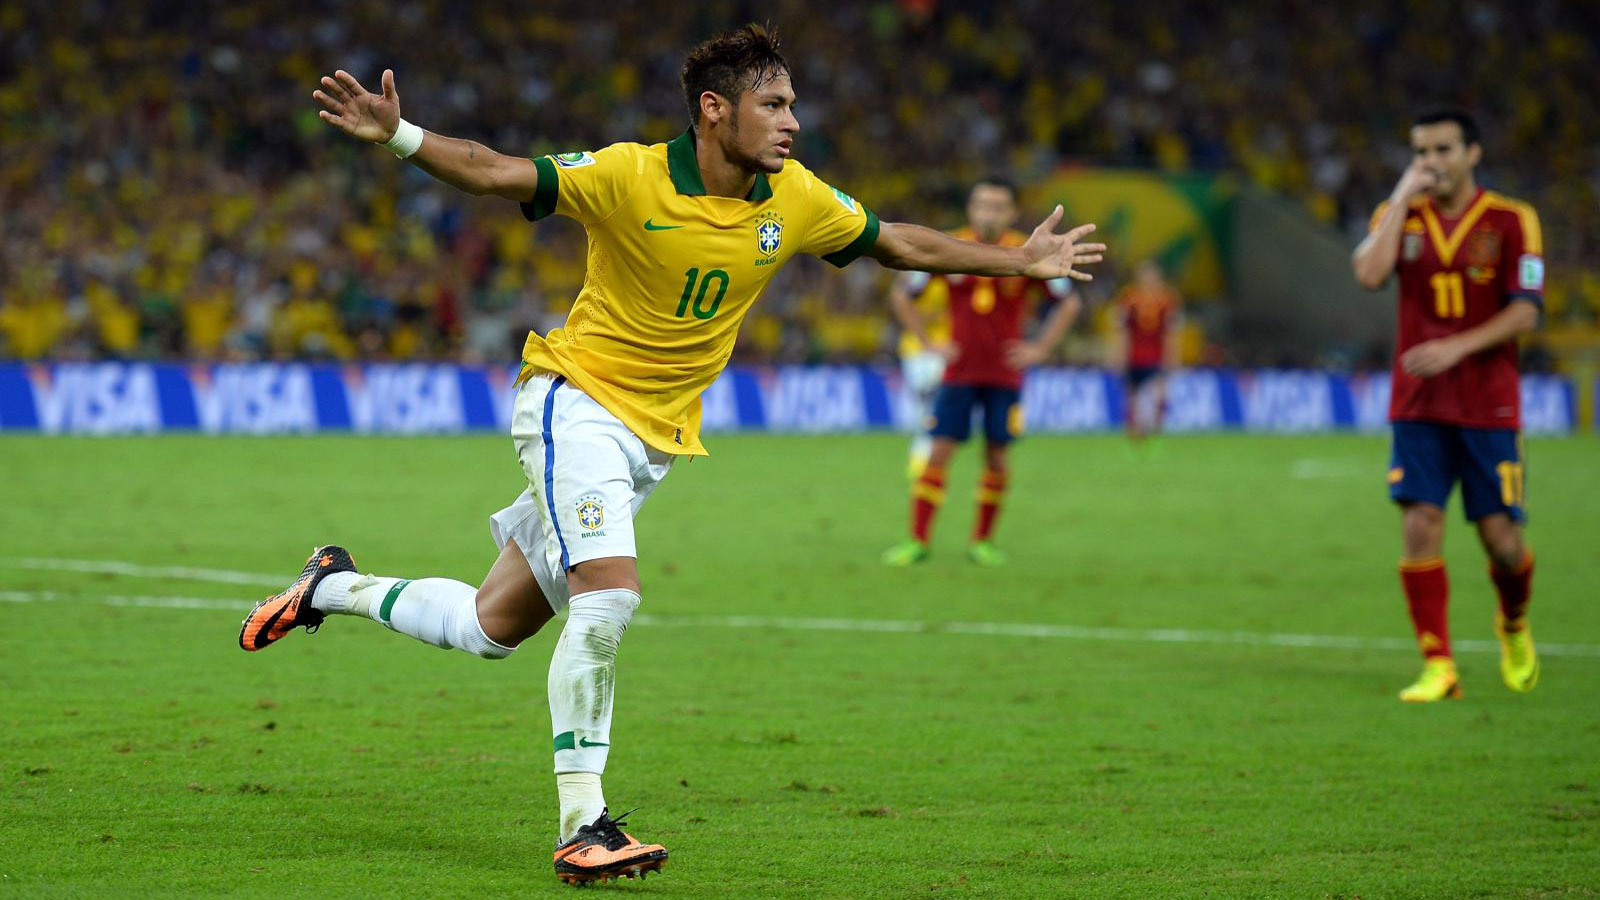 brazil neymar wallpaper 2014 - photo #7